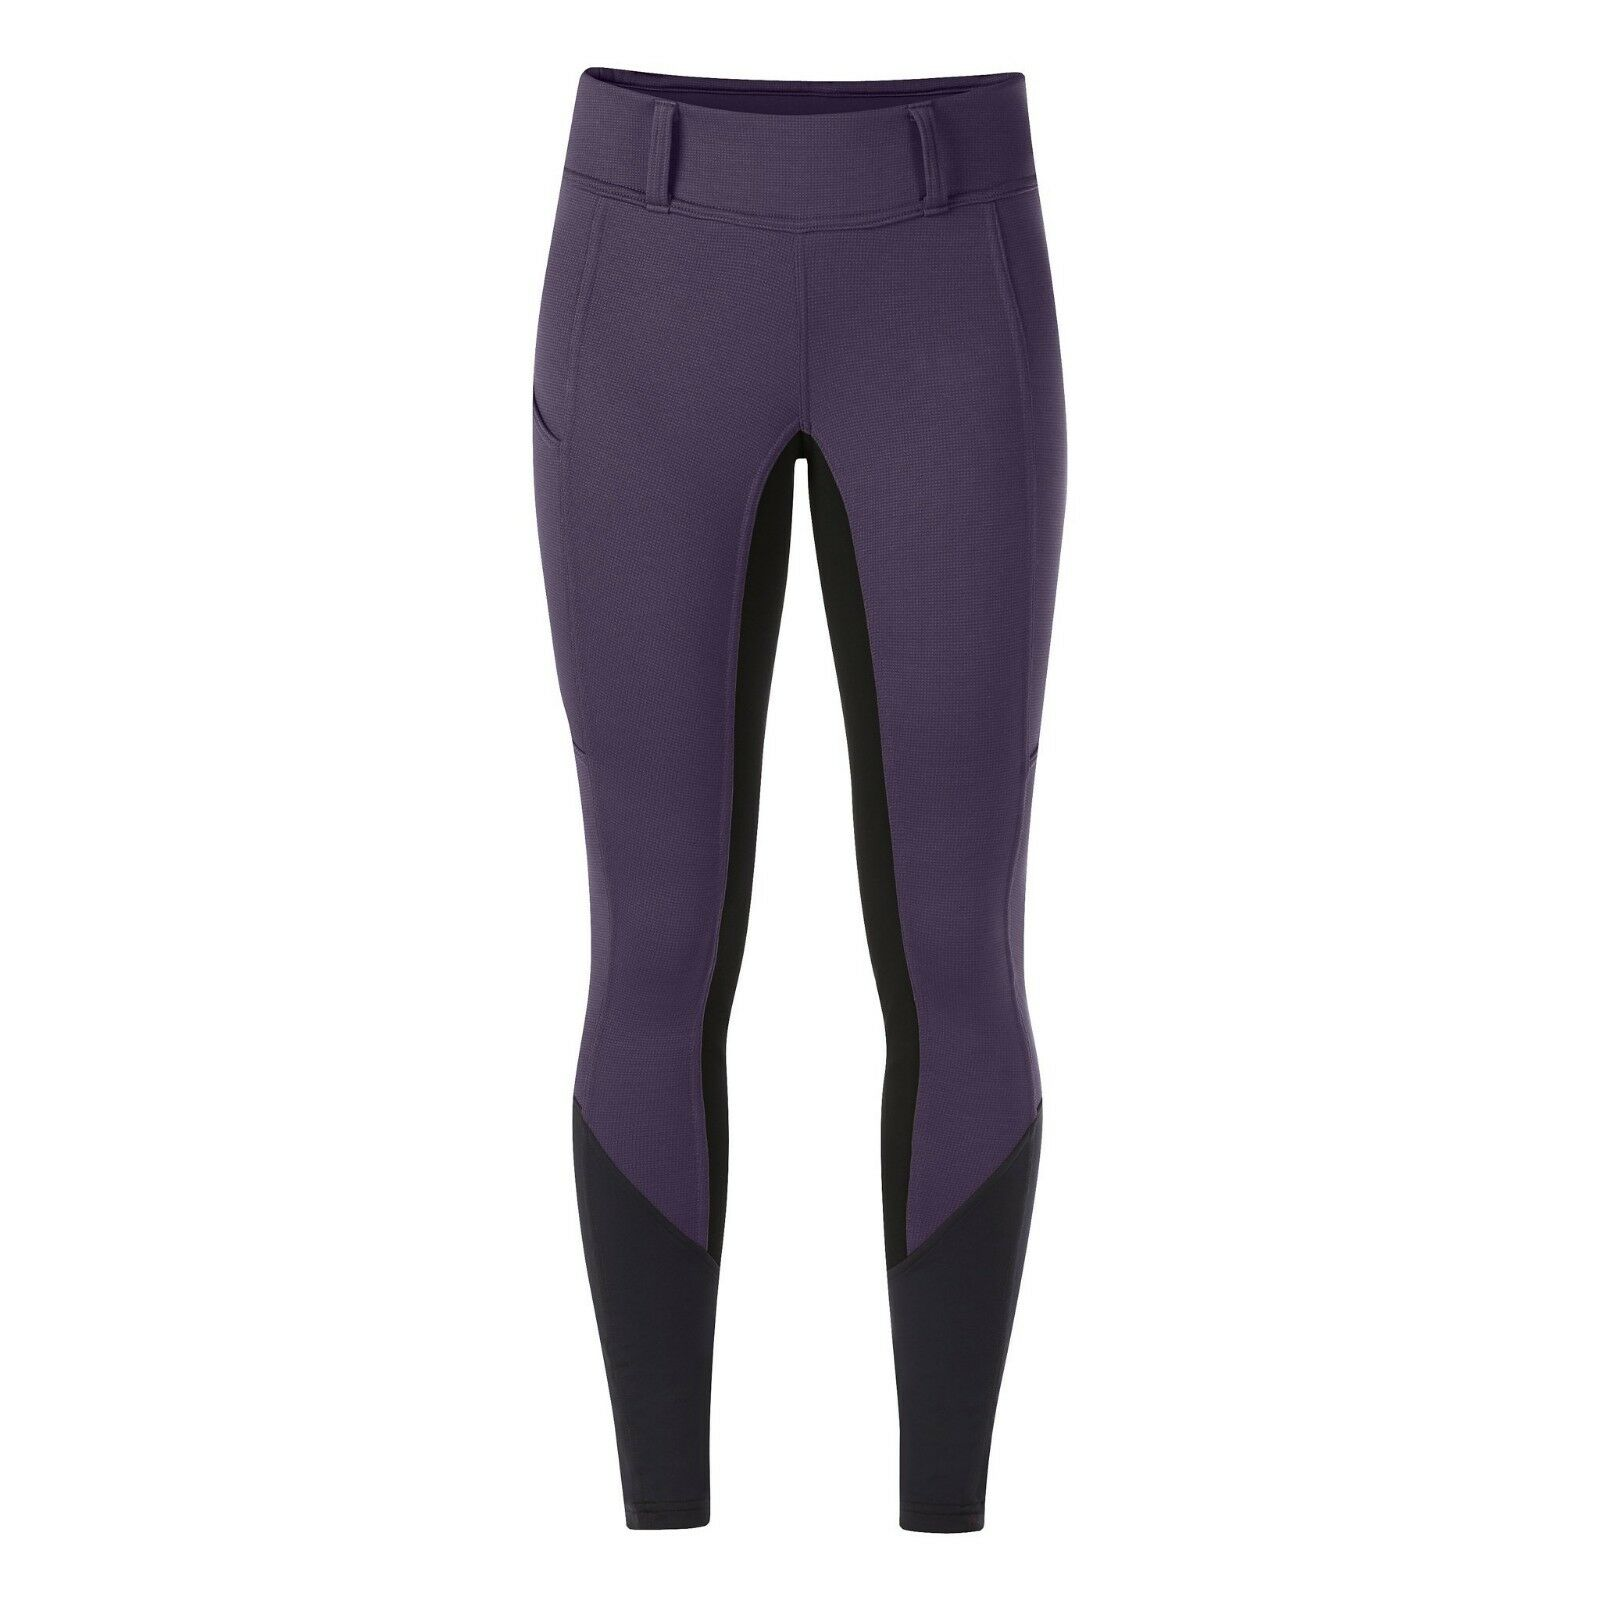 Kerrits  Ladies Sit TIght Windpro Full Seat Breech - Different colors and Sizes  cheap in high quality